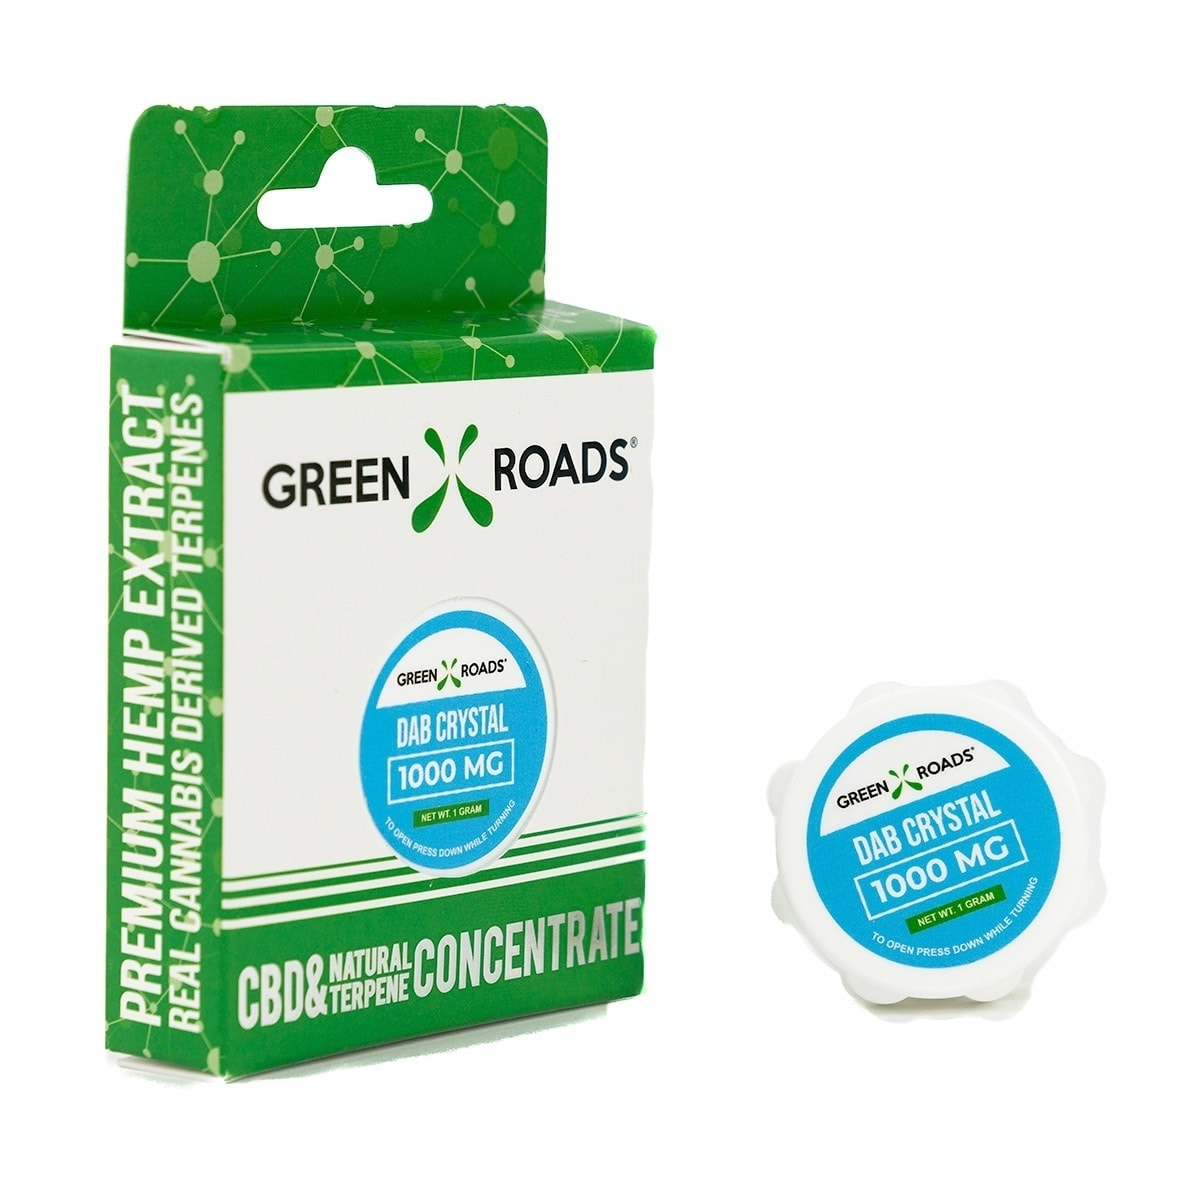 green-roads-cbd-dabs-crystal-isolate-1gram-1000mg-of-cbd